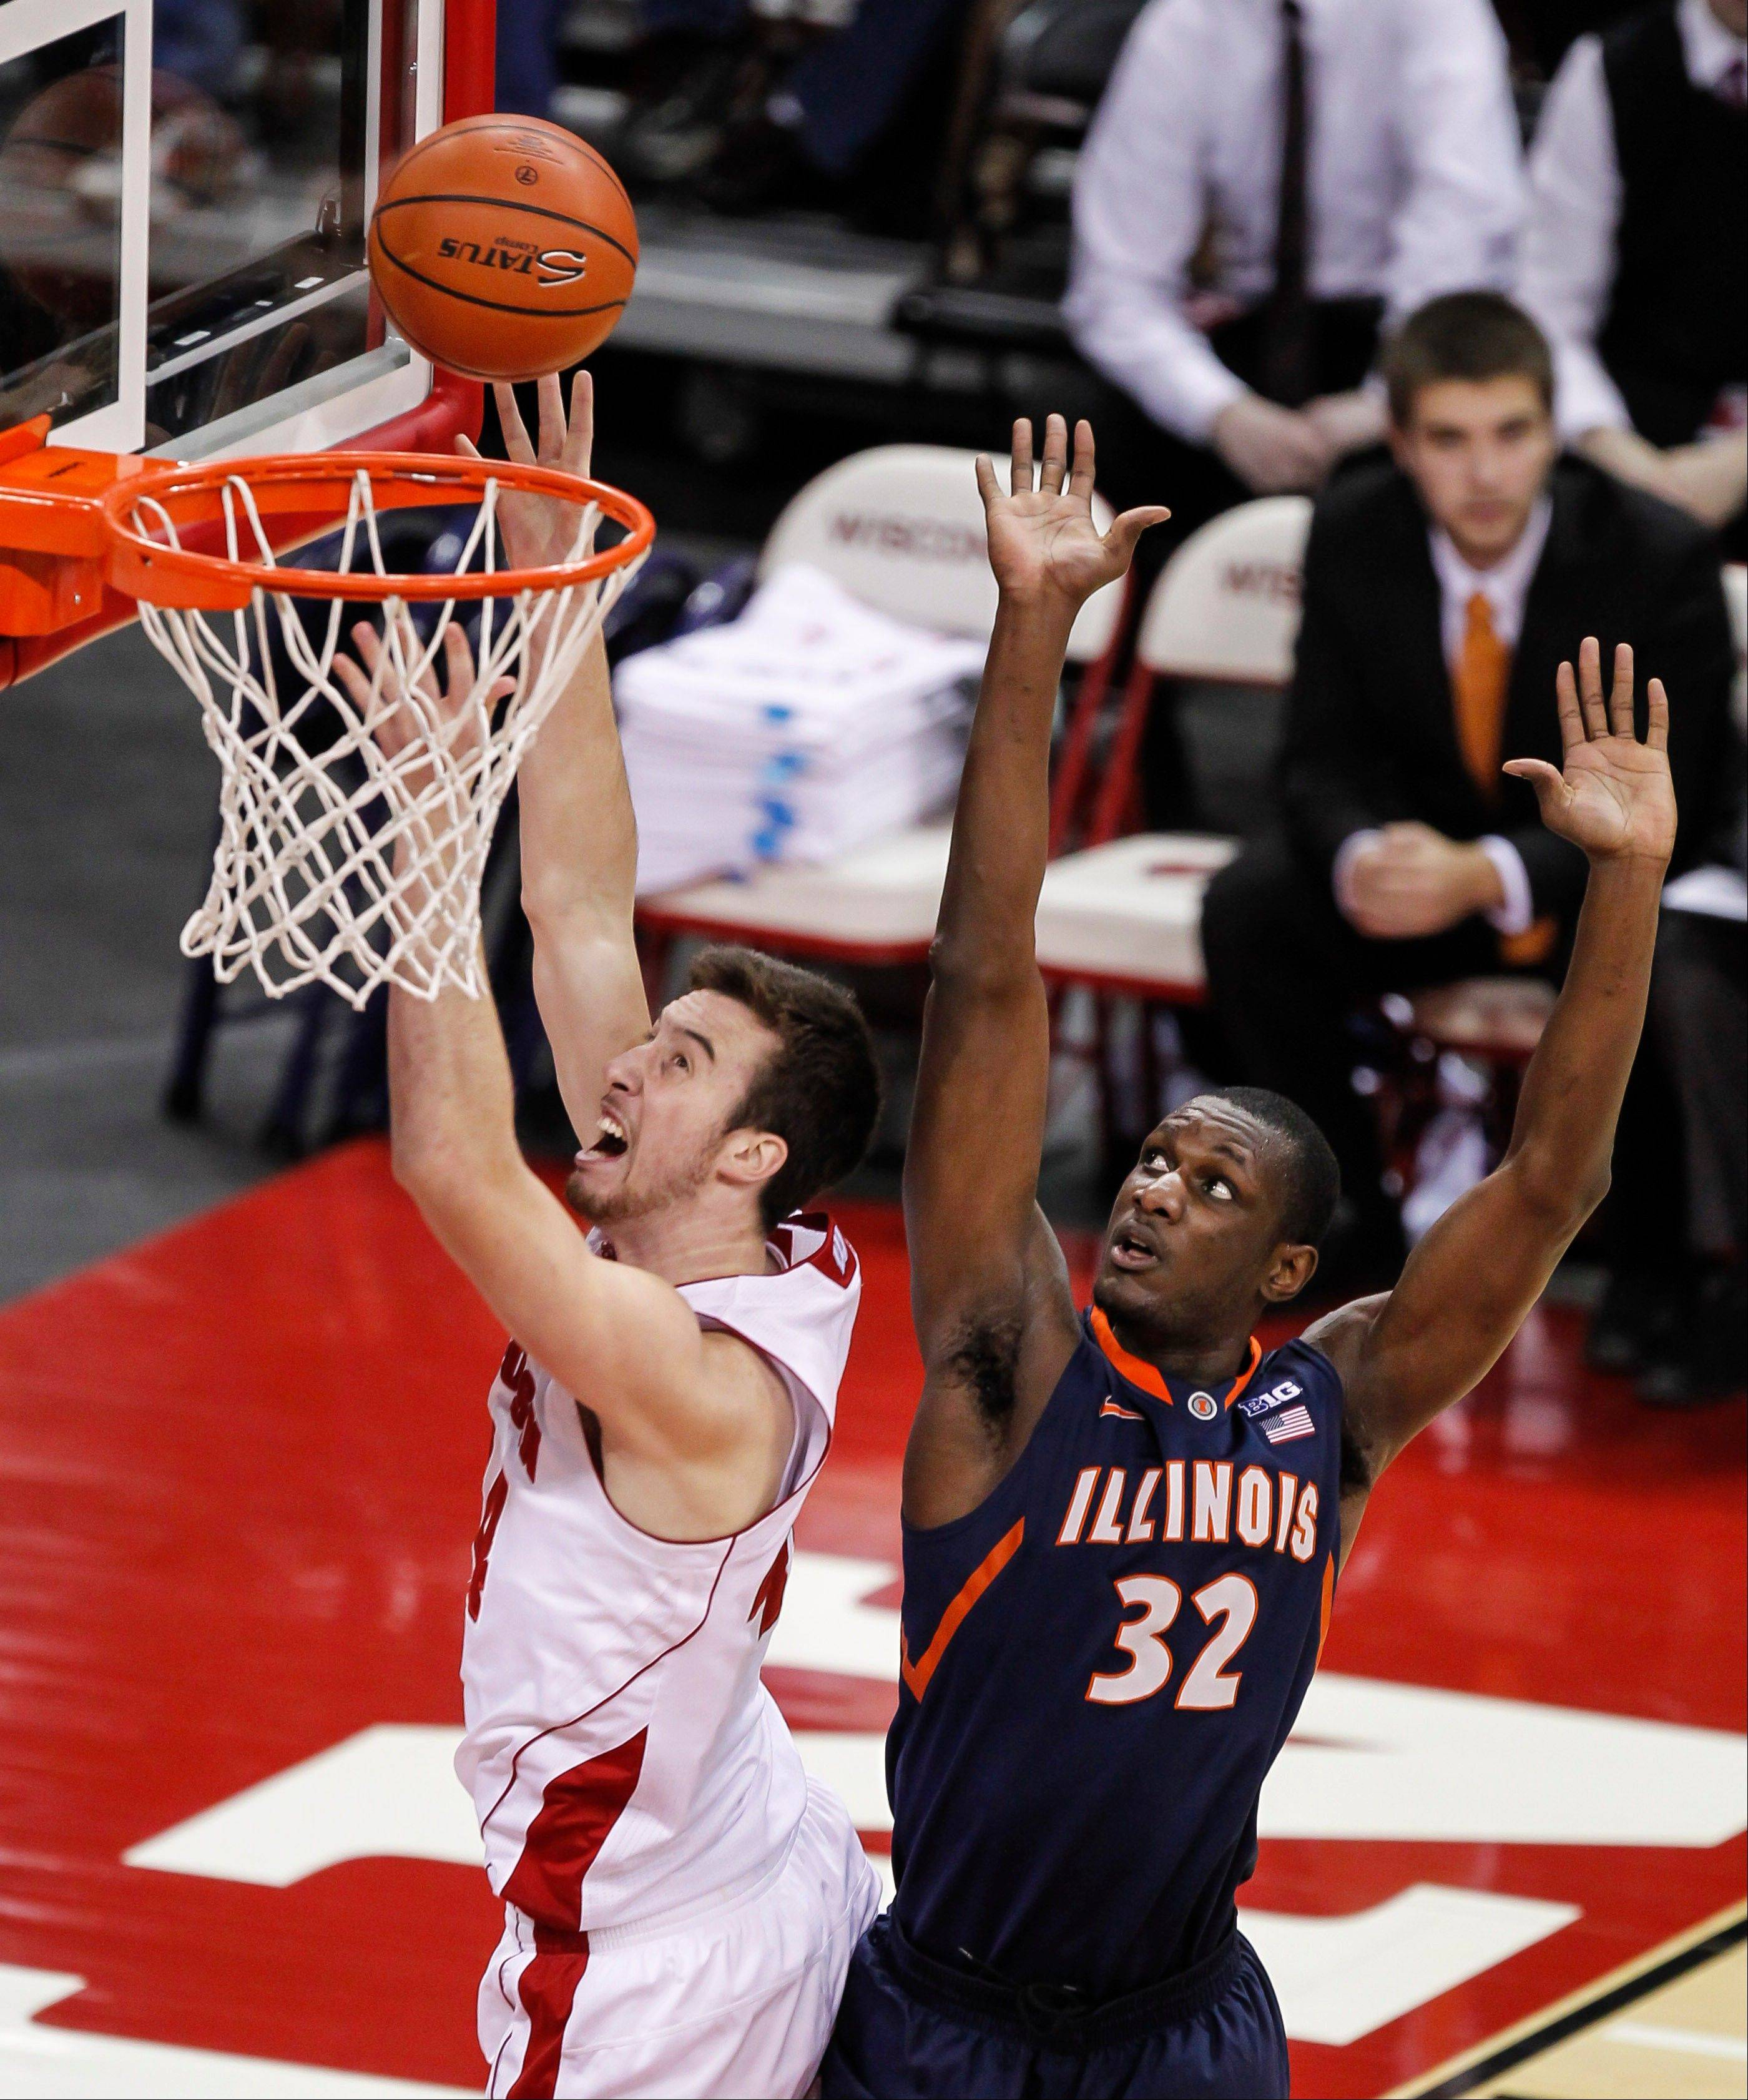 Wisconsin's Frank Kaminsky shoots against Illinois' Nnanna Egwu during the first half of an NCAA college basketball game Wednesday, Jan. 8, 2014, in Madison, Wis. Egwu fouled Kaminsky on the play. (AP Photo/Andy Manis)